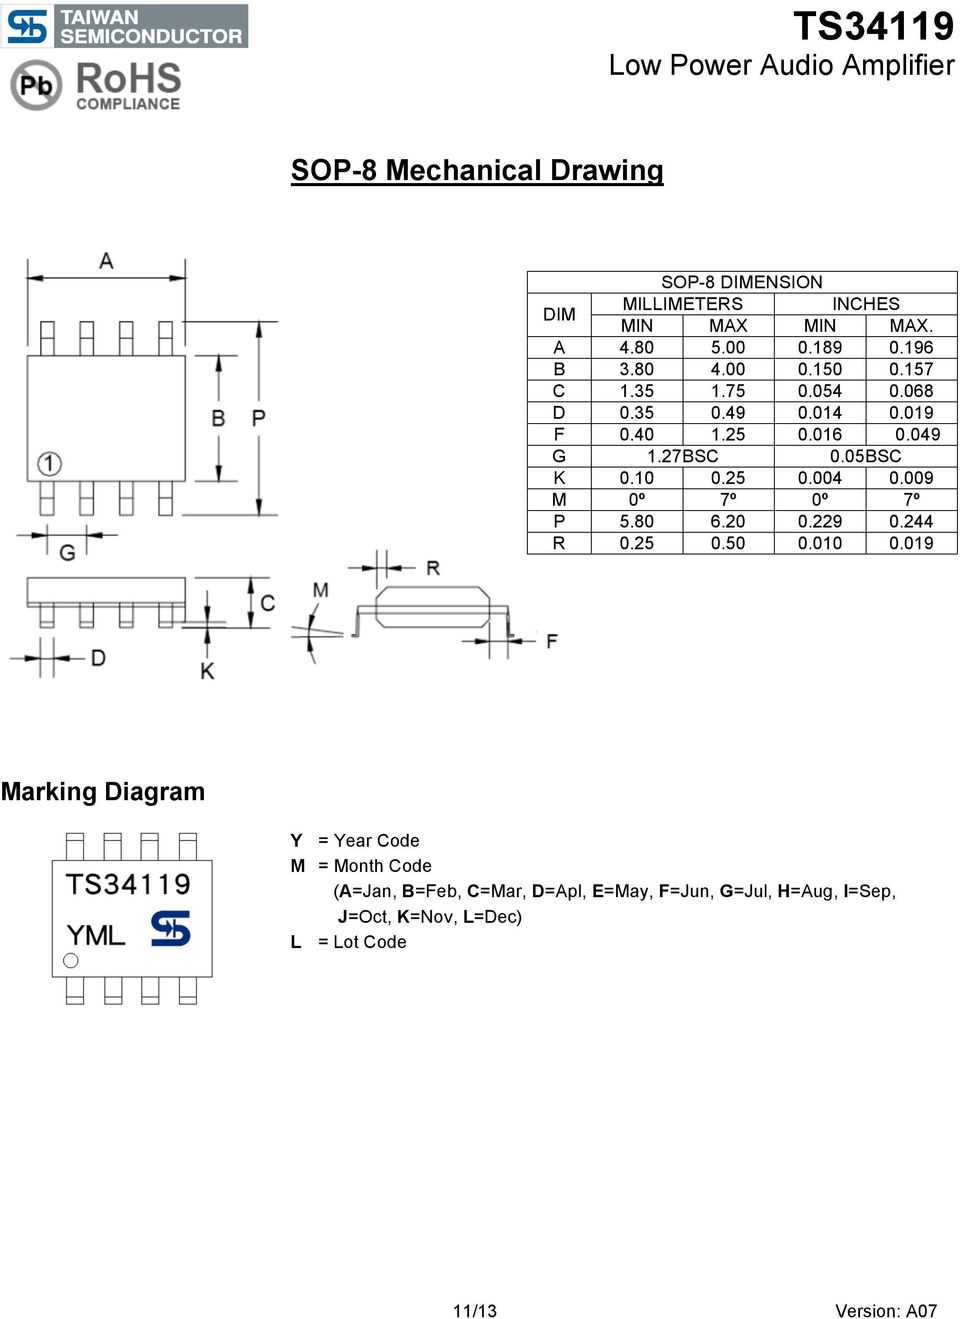 Ts34119 Low Power Audio Amplifier Pdf Ic Pinout Diagrams Together With High Lifier Schematics 25 0004 0009 M 0 7 P 580 620 0229 0244 R 025 050